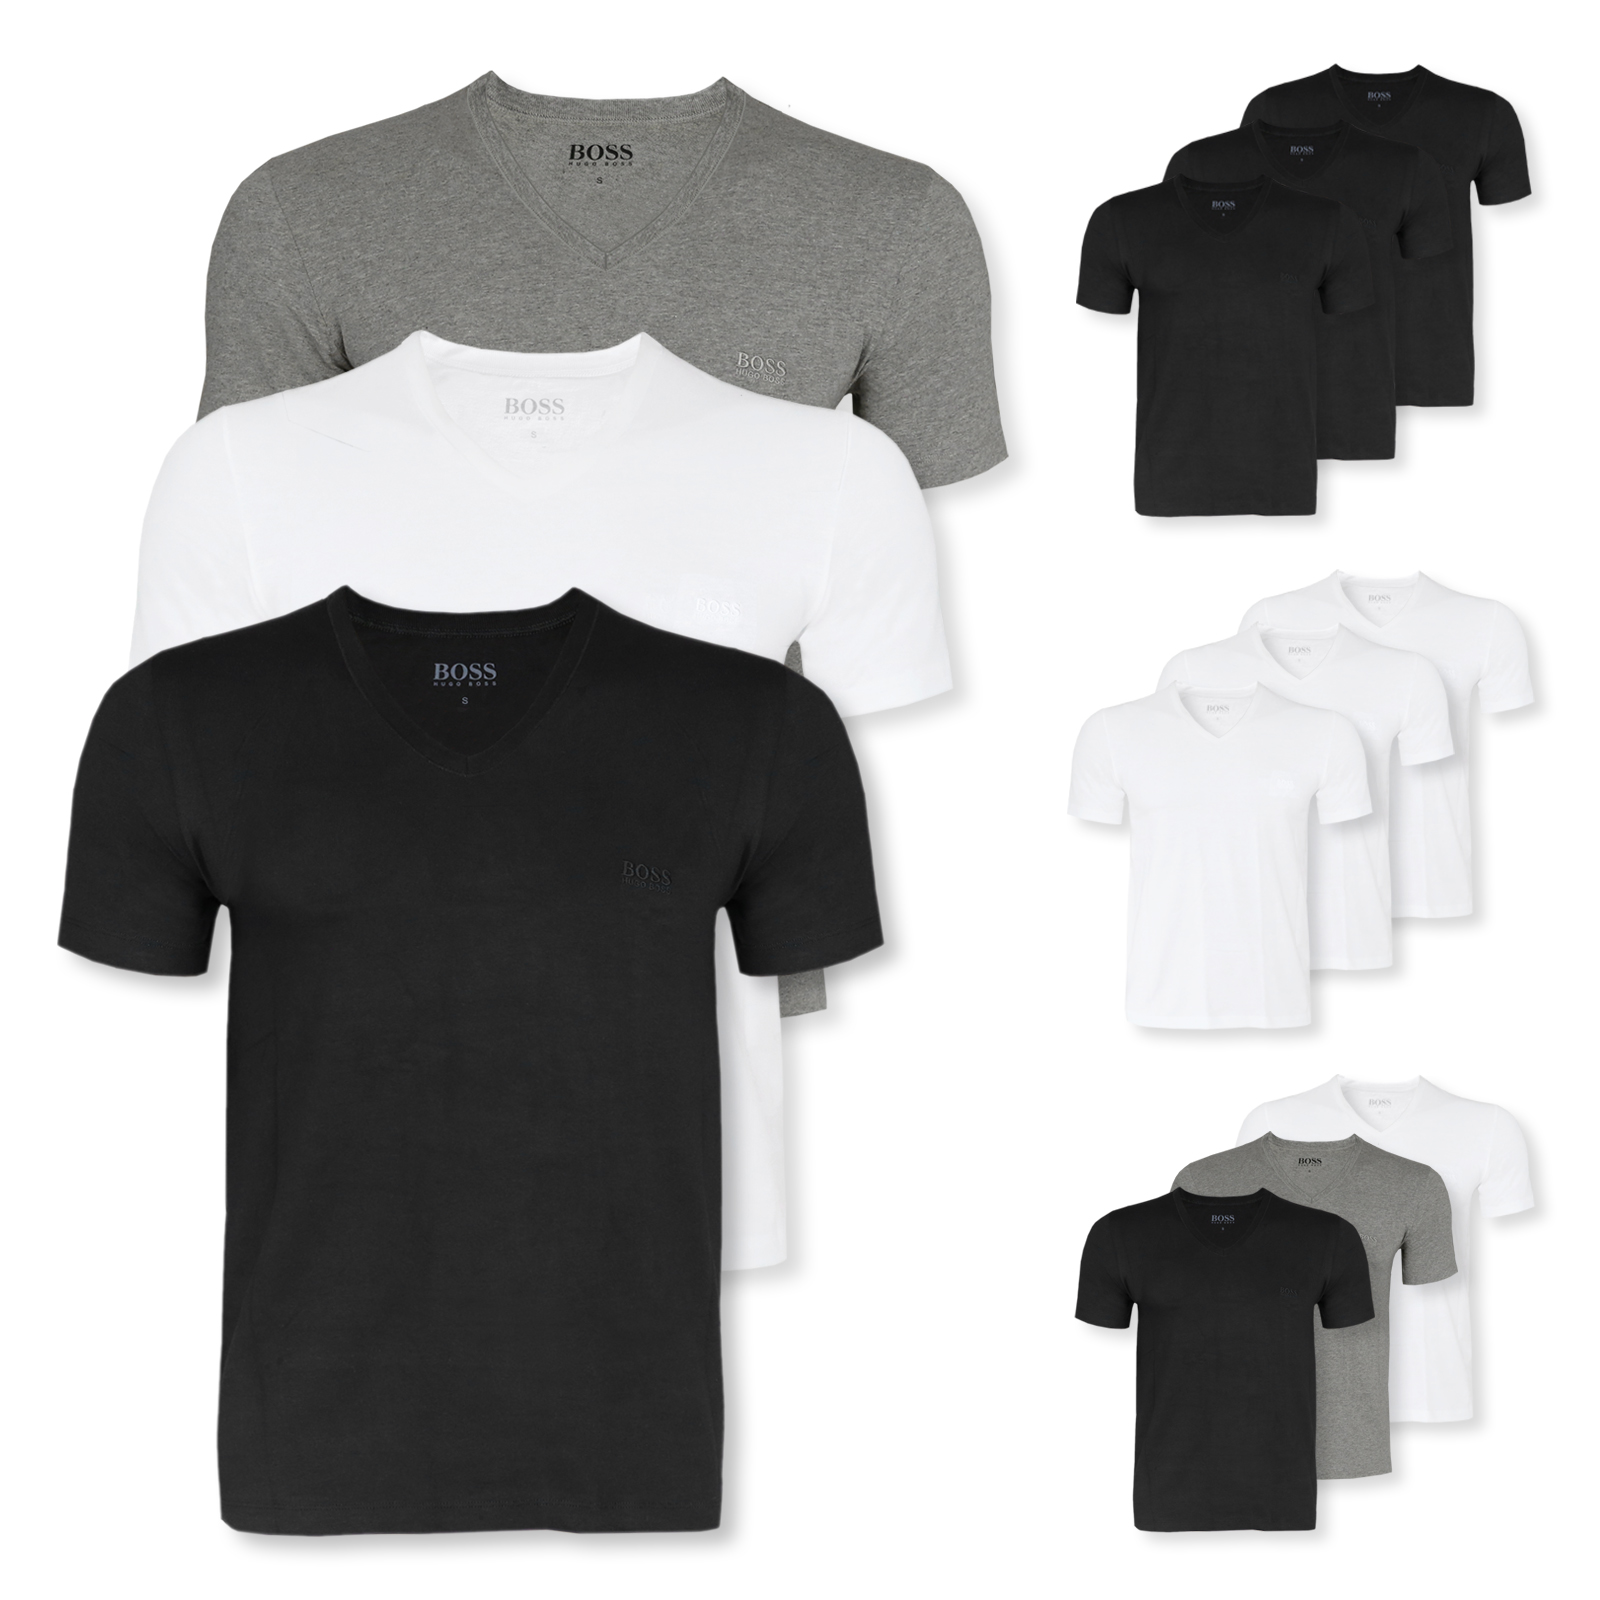 3er oder 6er Pack HUGO BOSS T-Shirts kurzarm V-Neck in mix